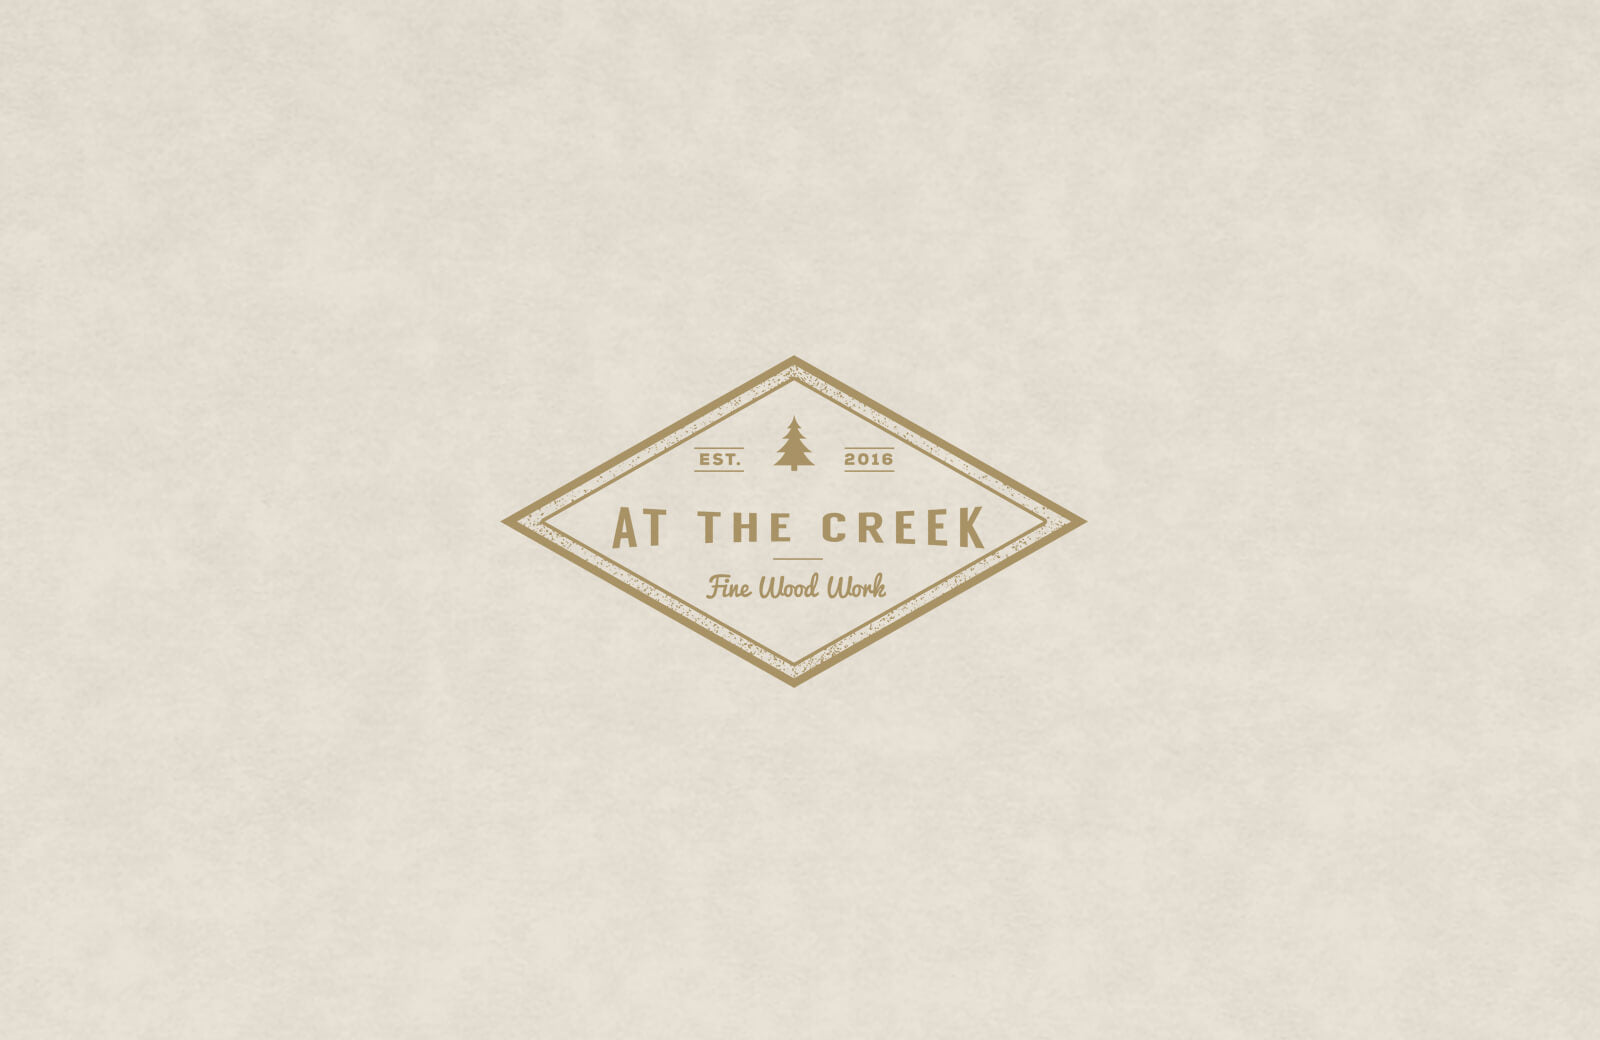 We designed this vintage style custom logo for 'At The creek' furniture made from reclaimed / salvaged wood.